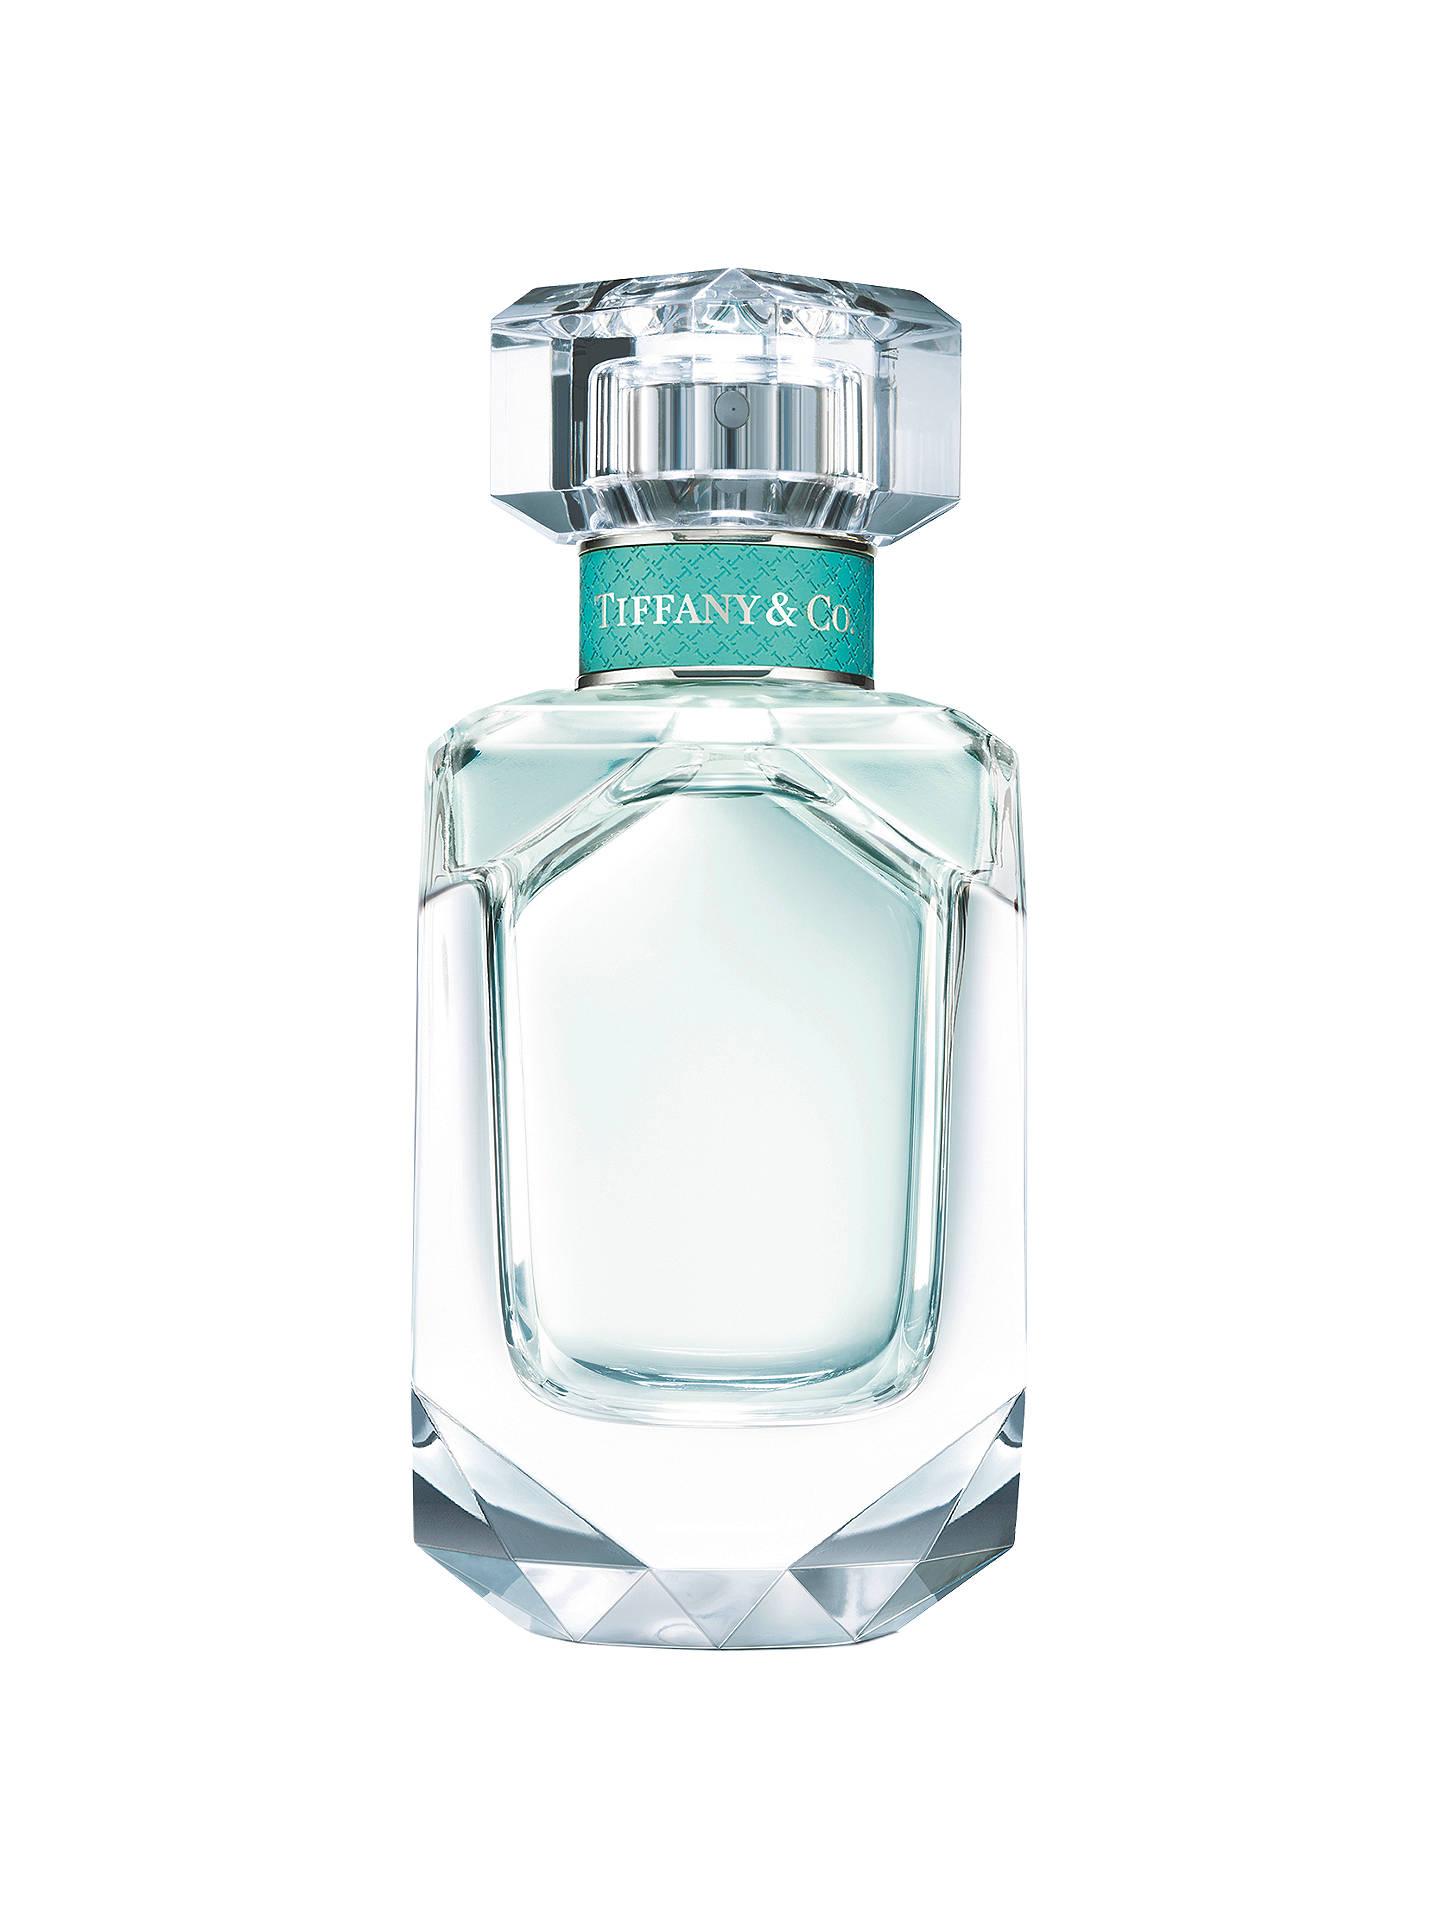 Buy Tiffany & Co Eau de Parfum, 50ml Online at johnlewis.com